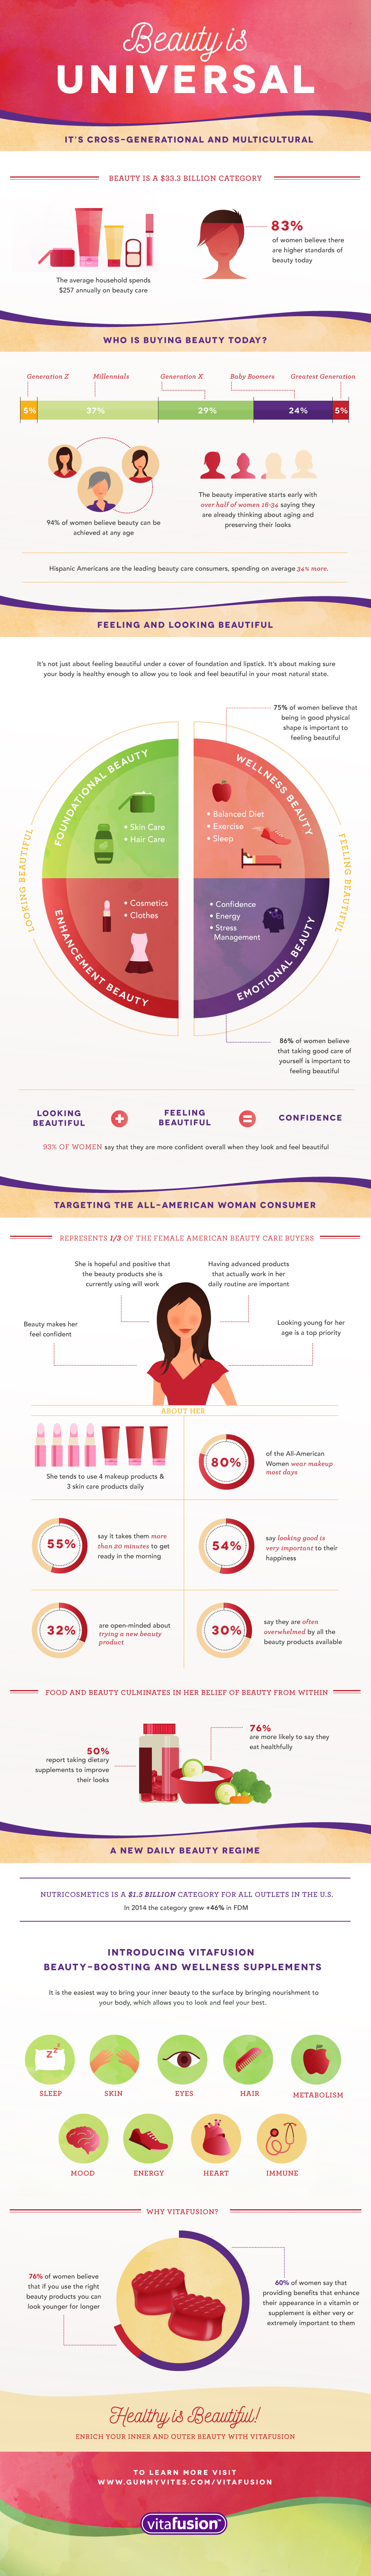 Beauty is Universal | Stats on the Beauty Industry Today